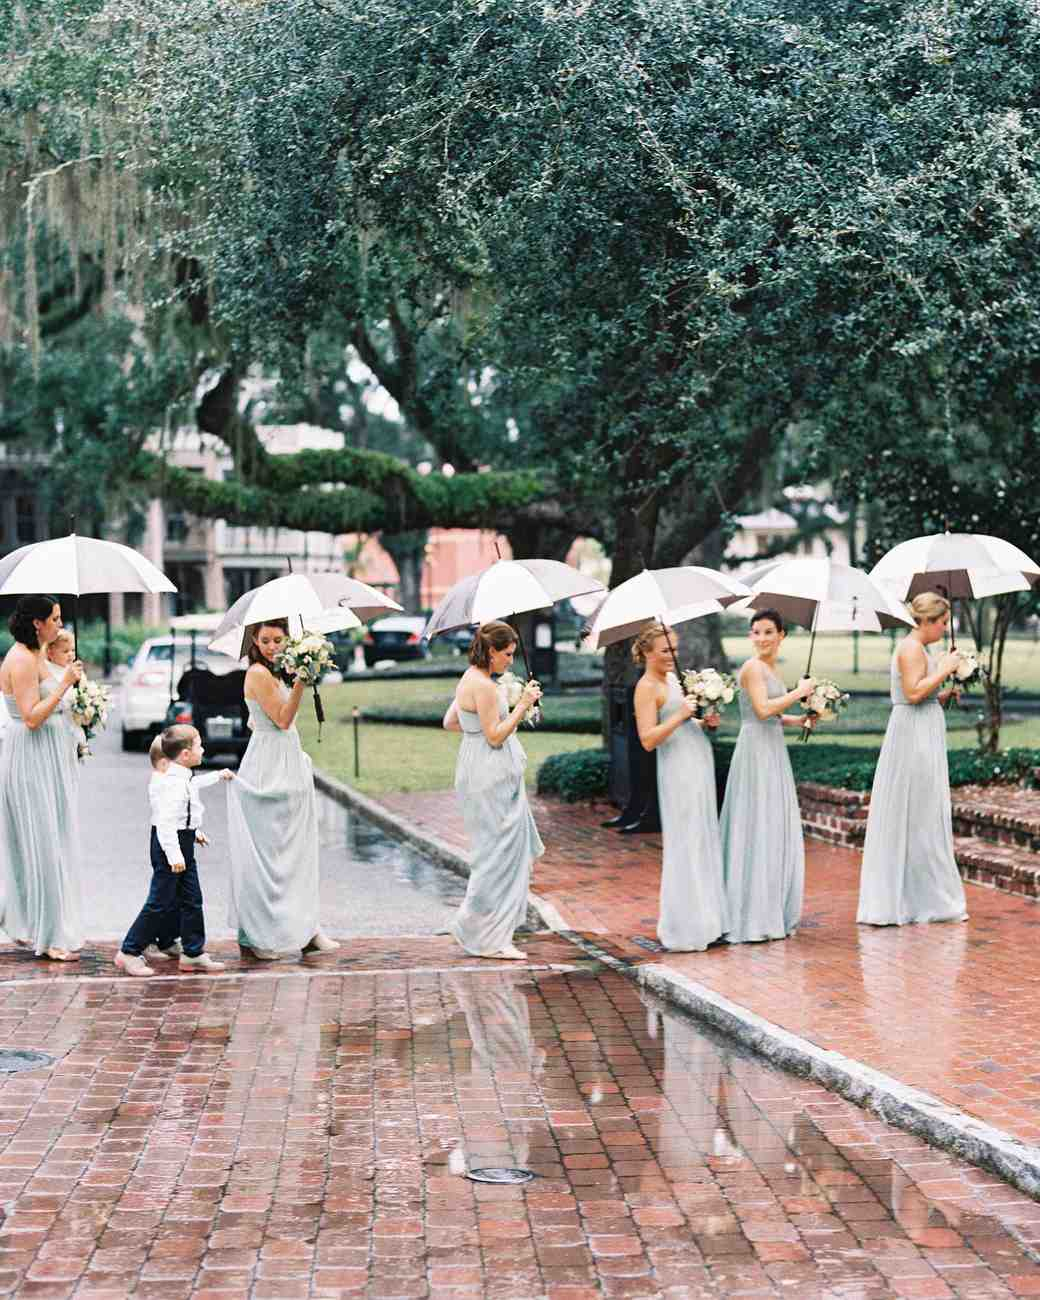 taylor-john-wedding-rain-bridesmaids-umbrella-19-s113035-0616.jpg